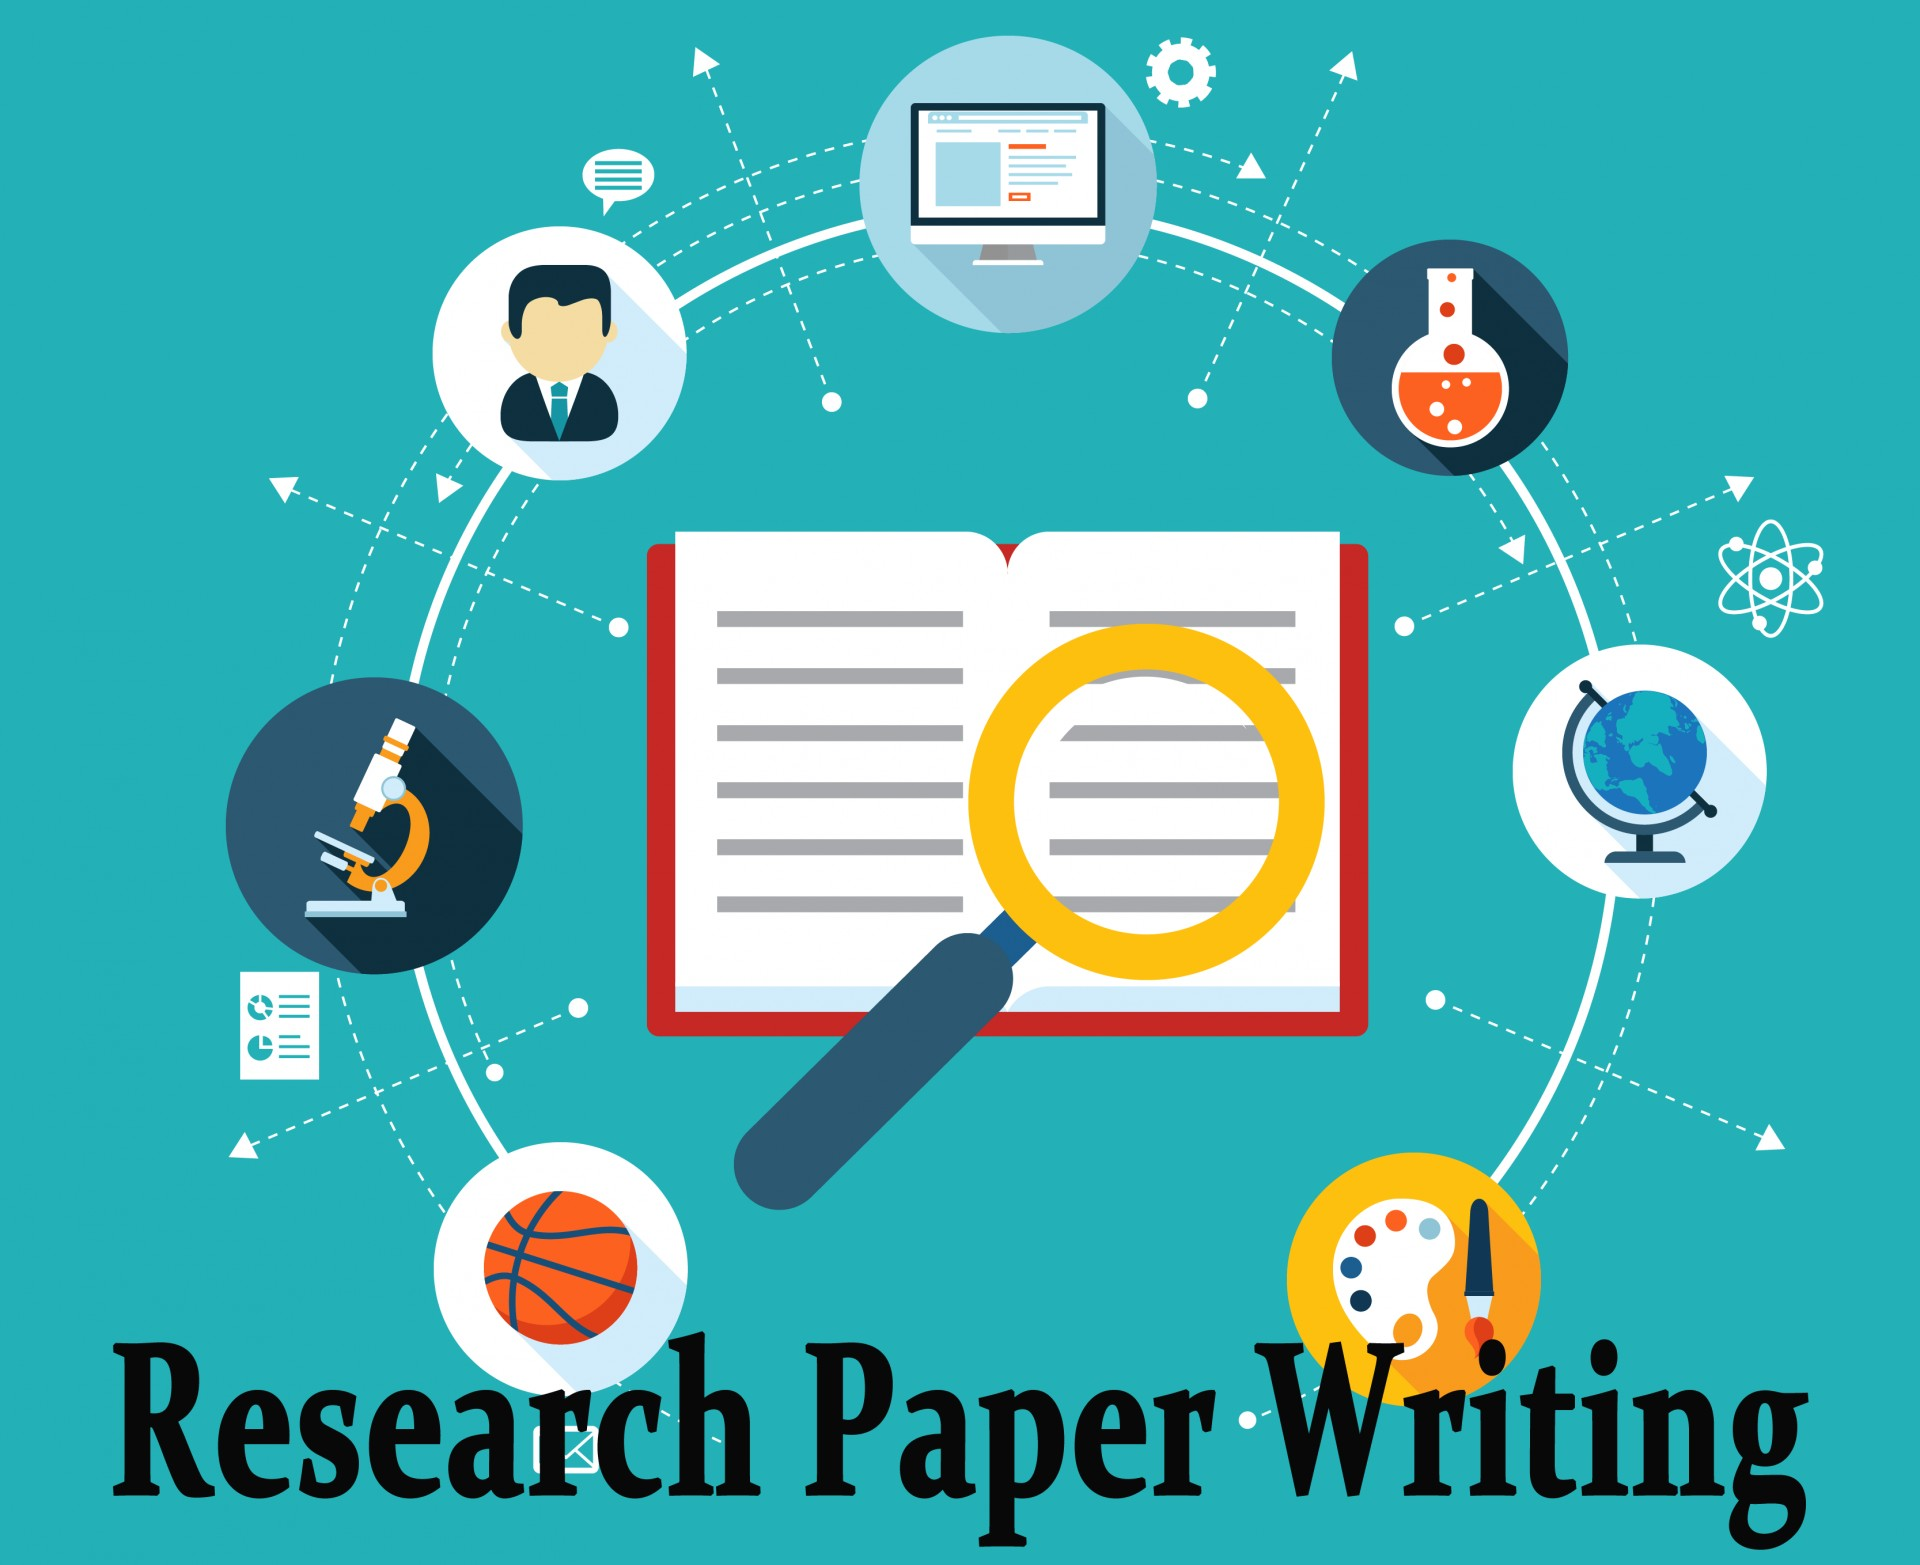 008 Writing Of Research Paper 503 Effective Fascinating Abstract Review Introduction 1920